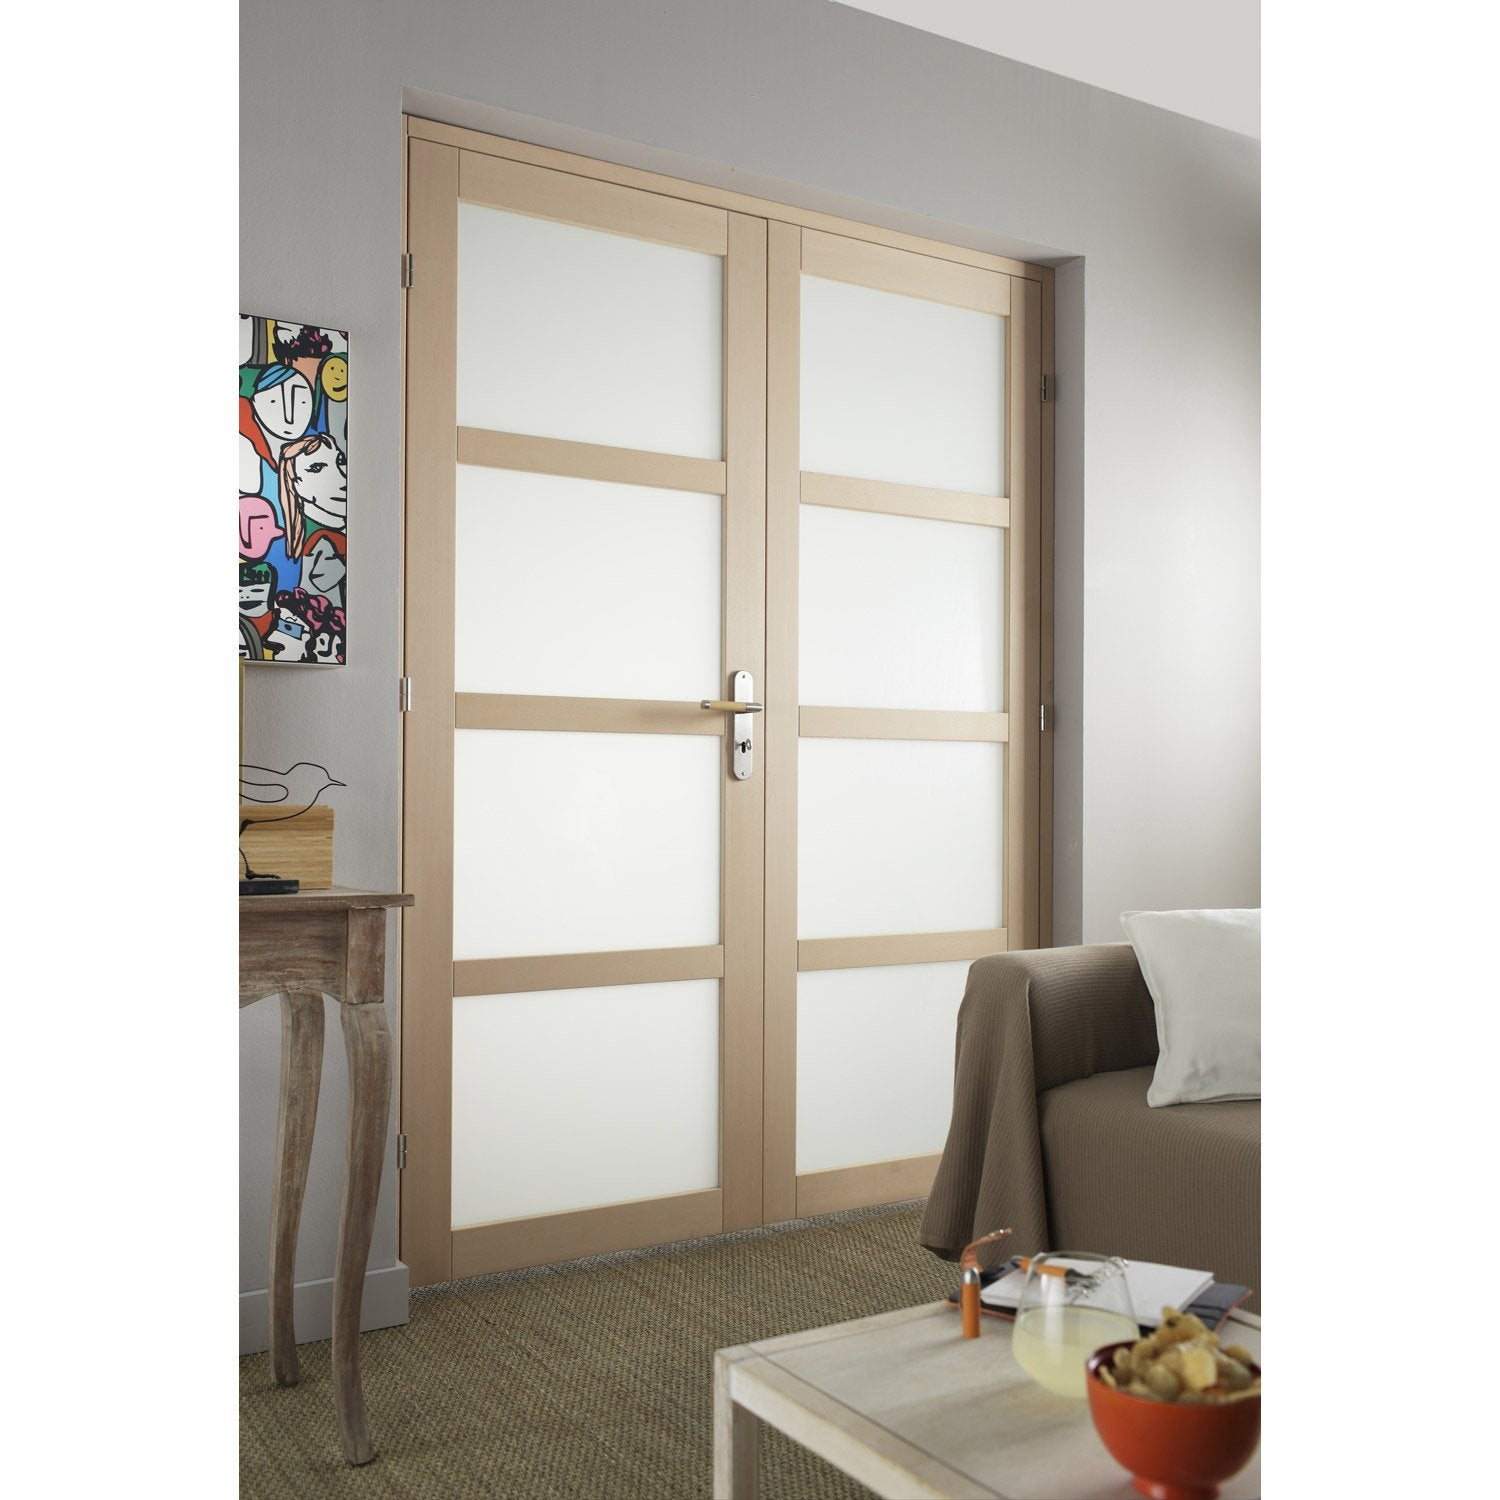 Porte accordeon interieur leroy merlin fashion designs - Porte vitree interieur leroy merlin ...